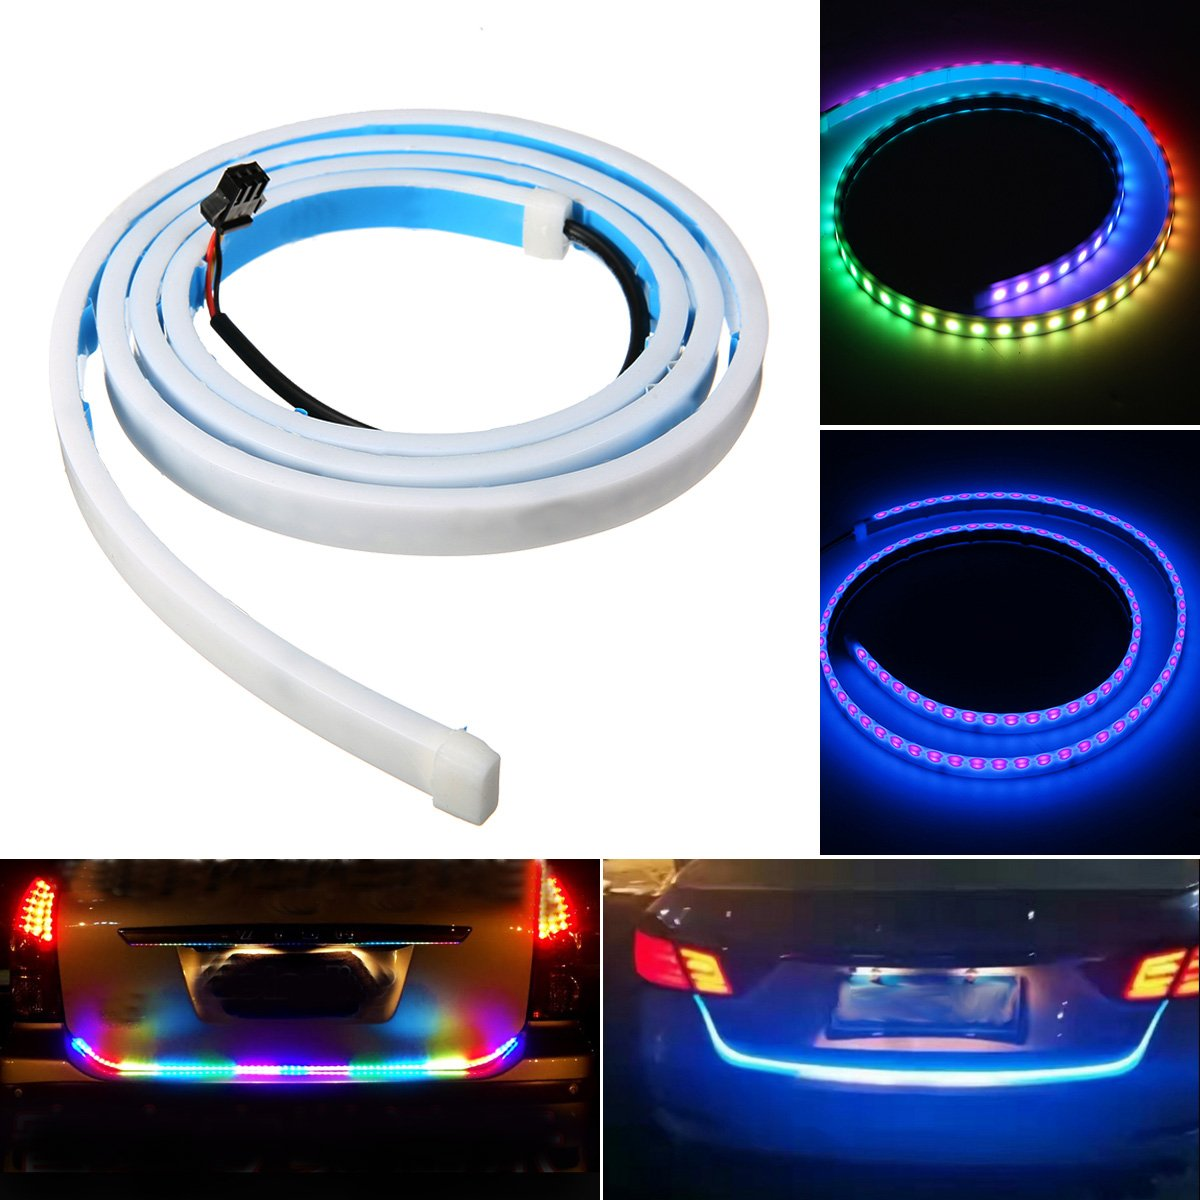 Ambother 47 Car Led Tail Tailgate Rear Lights Bar Strip Traffic Light Diagram Tuning Flexible Waterproof Multi Color Turn Sign Running Brake Caution Dc 12v